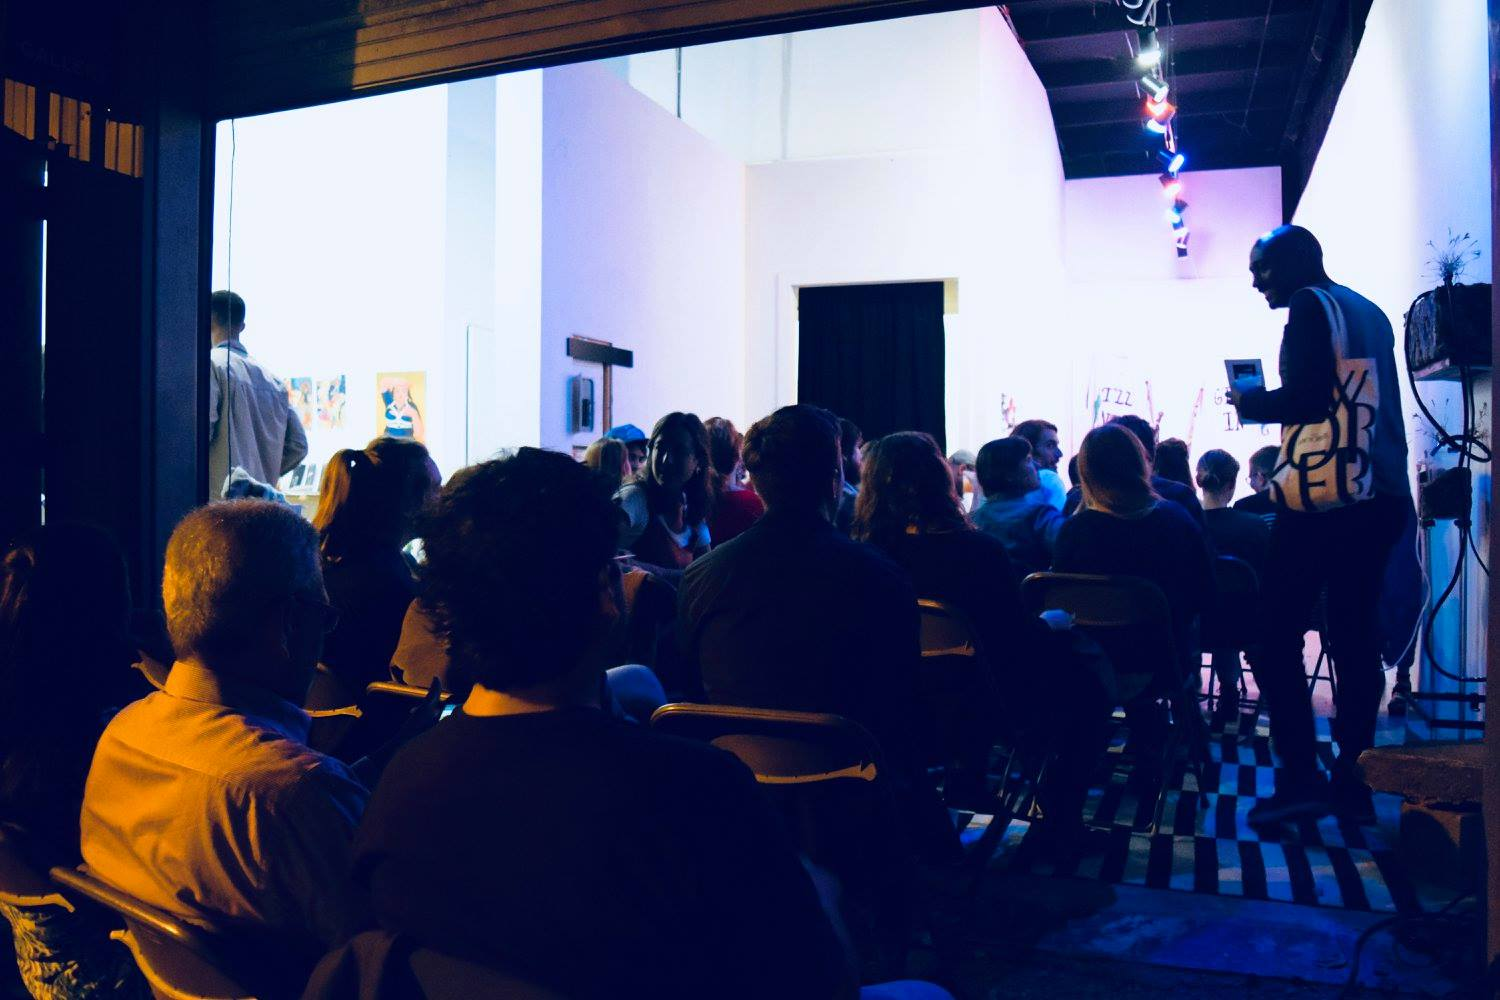 Thanks again to the gorgeous venue, ATM Gallery/Studio!